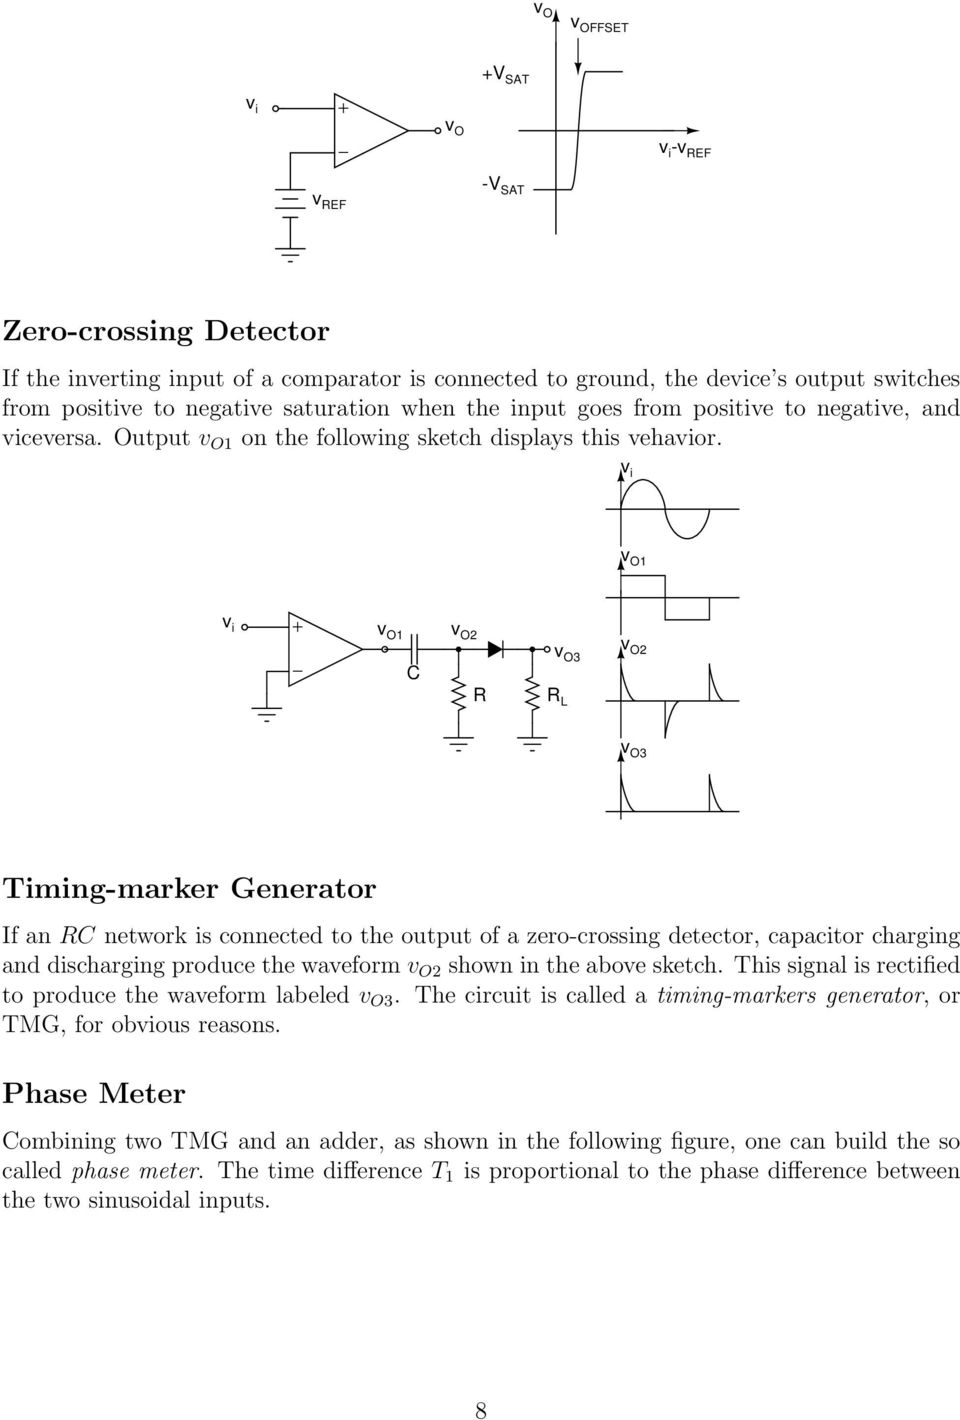 v O v O2 R v i v O v O2 v O3 R L v O3 Timing-marker Generator If an R network is connected to the output of a zero-crossing detector, capacitor charging and discharging produce the waveform v O2